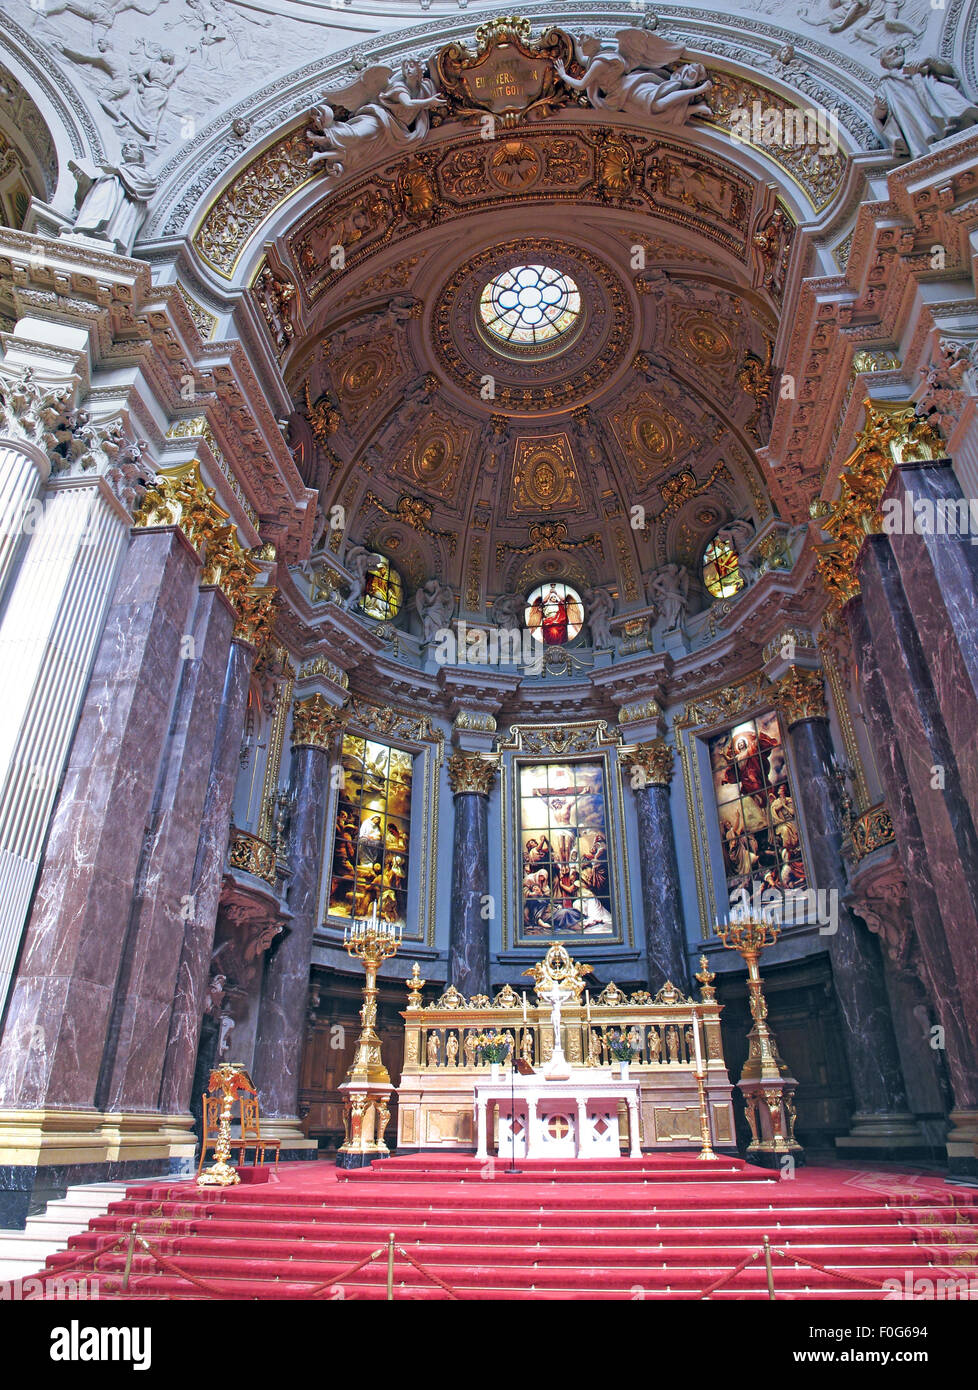 Am Lustgarten,10178 Berlin,Germany,altar,inside,interior,building,anglican,belief,religion,religious,wide,shot,wideshot,angle,wideangle,tall,high,Berlin Cathedral,Berliner Dom,GoTonySmith,Buy Pictures of,Buy Images Of